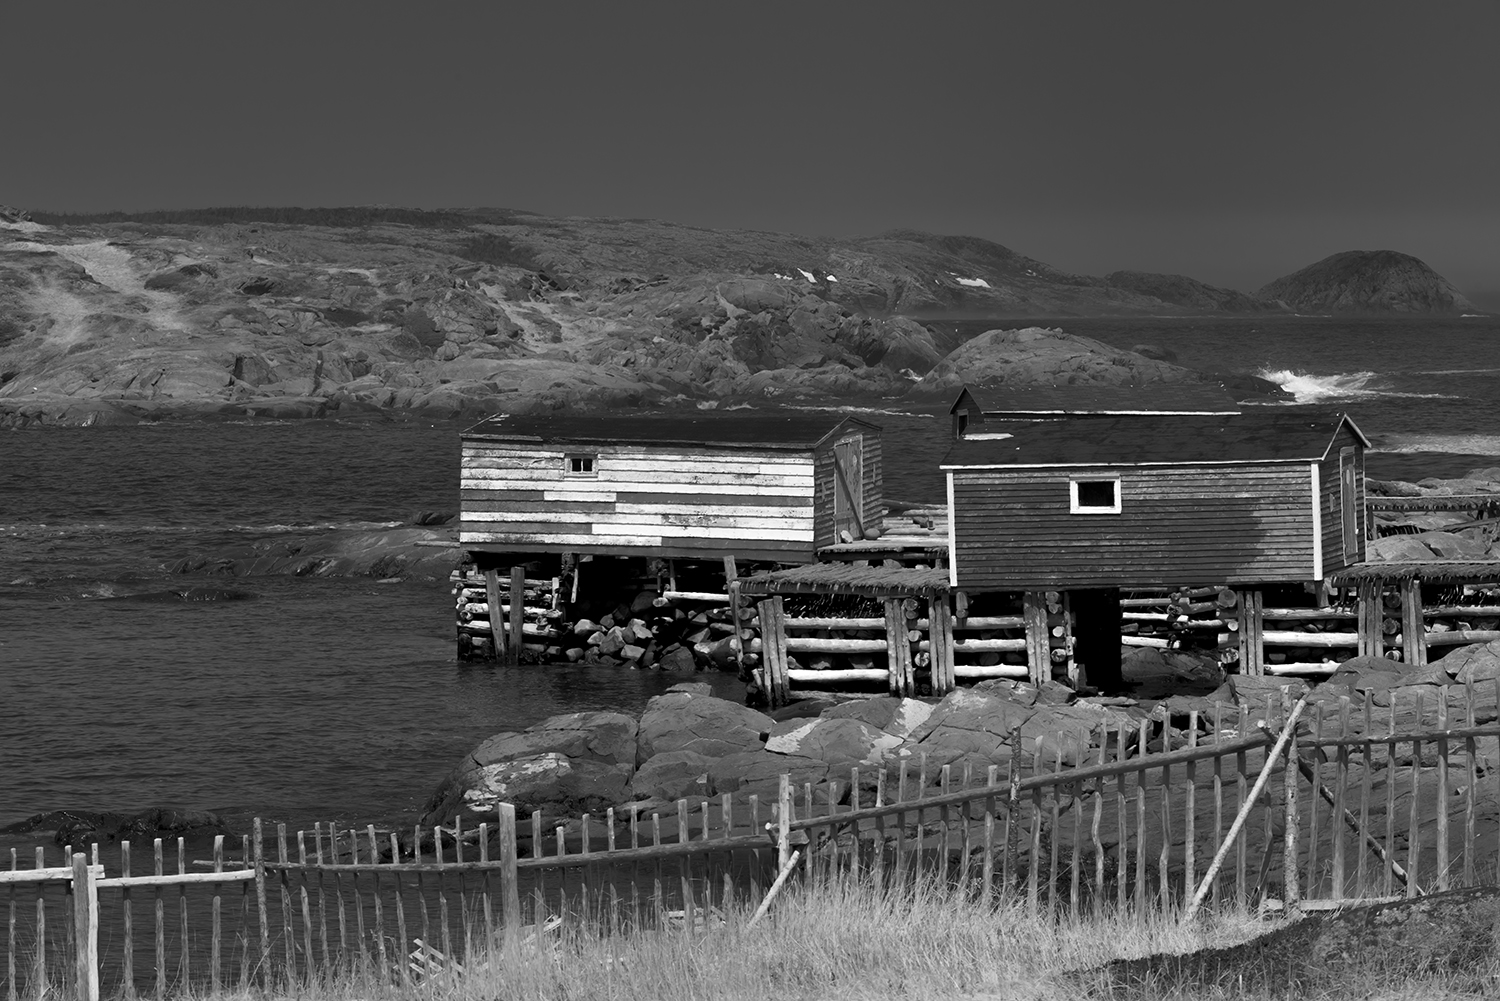 Newfoundland, CanadaImage no: 19-007486-bw  Click HERE to Add to Cart